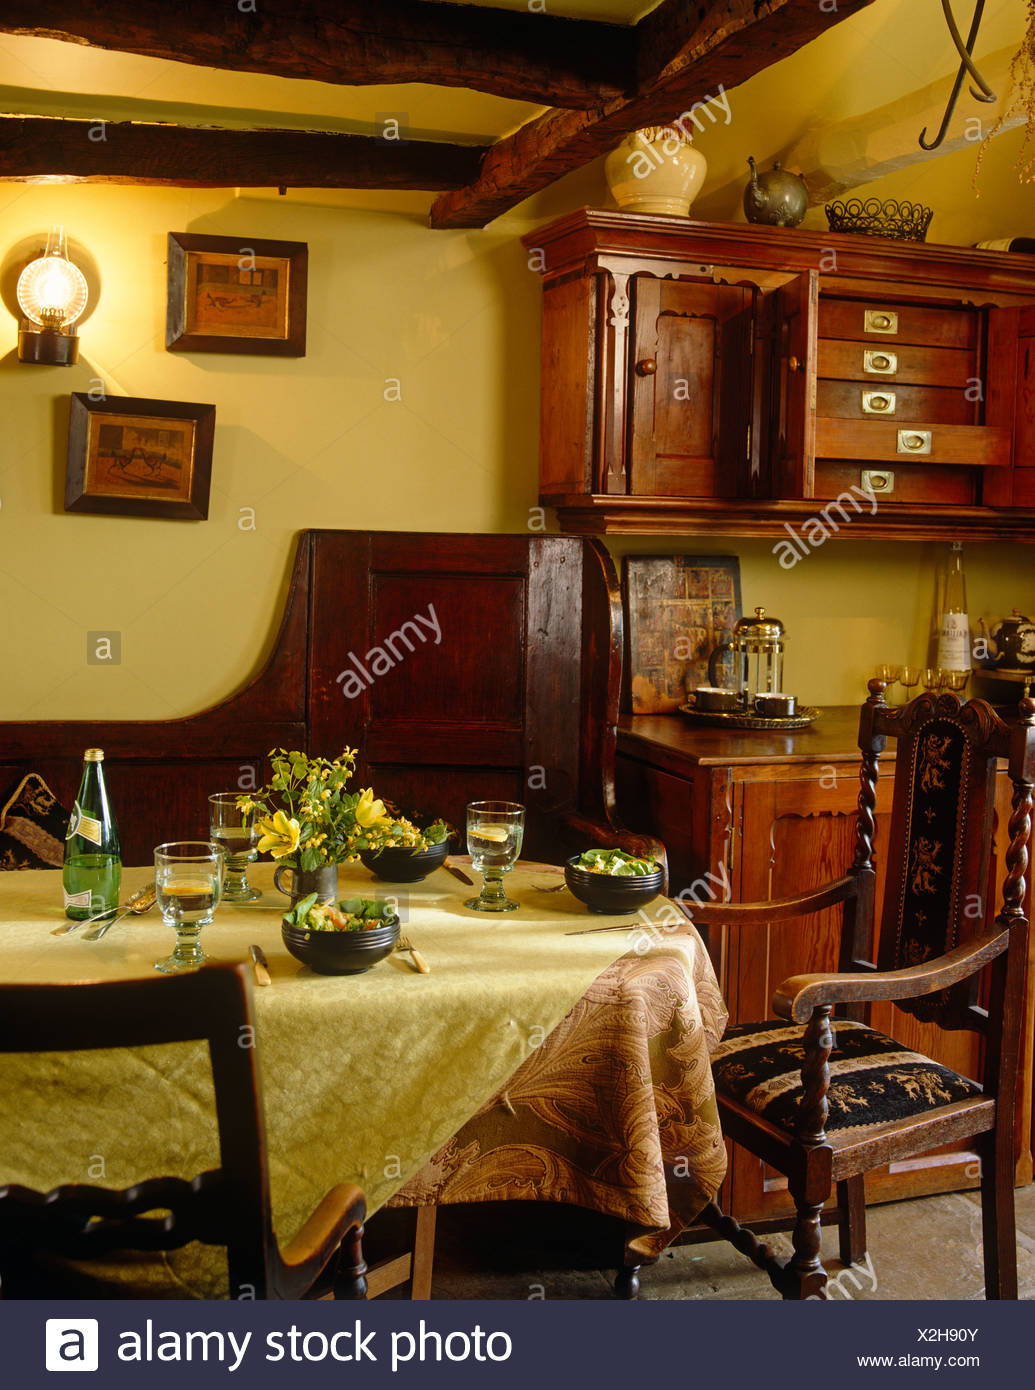 Jacobean style chairs at table with yellow cloth set for lunch in country dining room with old wooden cupboards Stock Photo